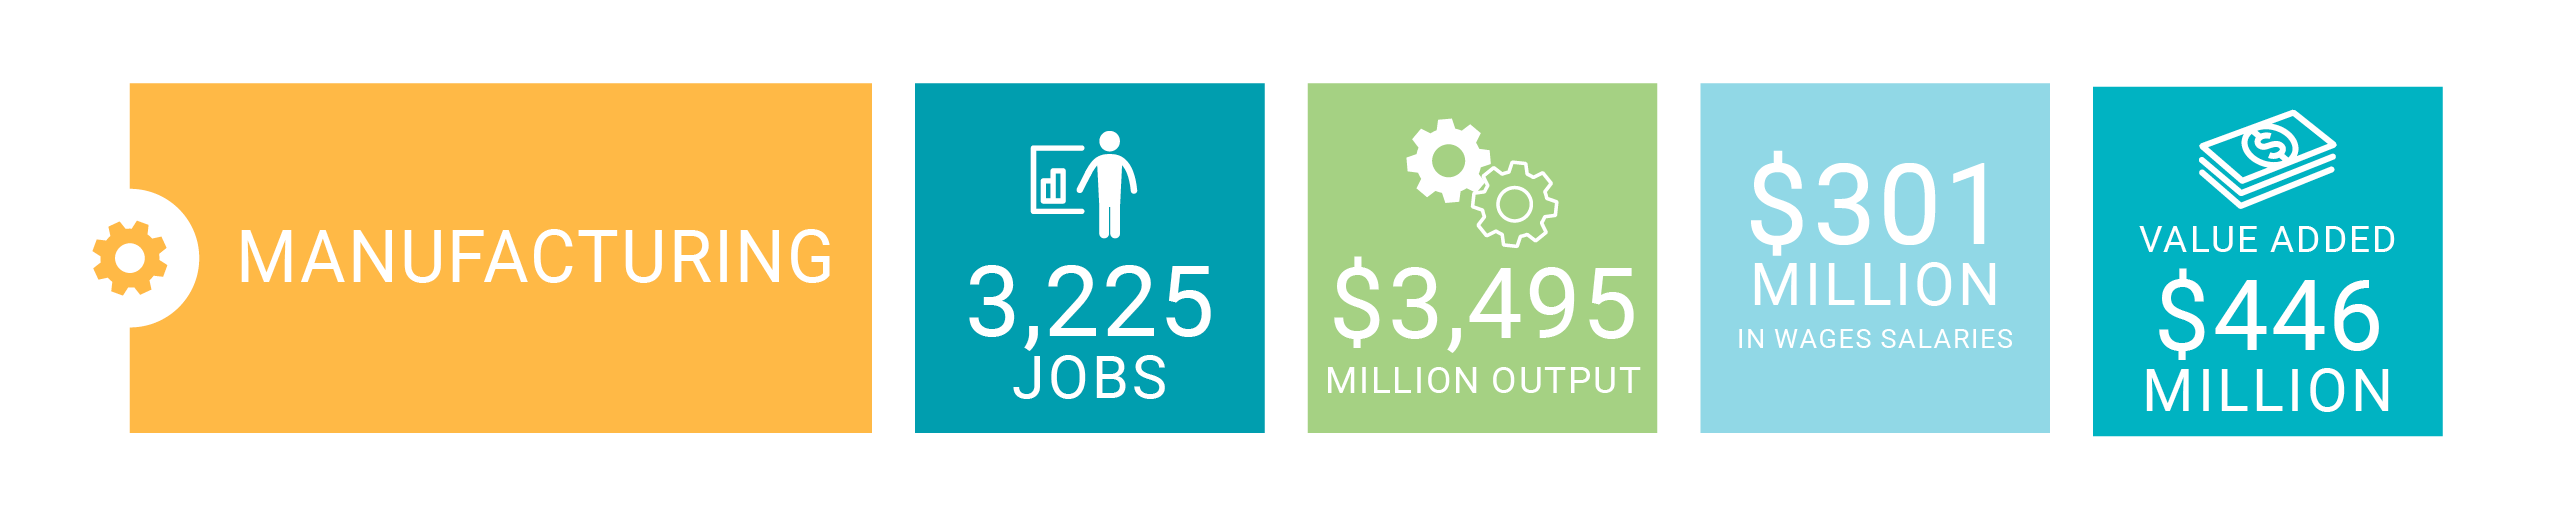 Manufacturing delivers 3225 jobs, $3495 million output, $301 million in wages and salaries and $446 million value added